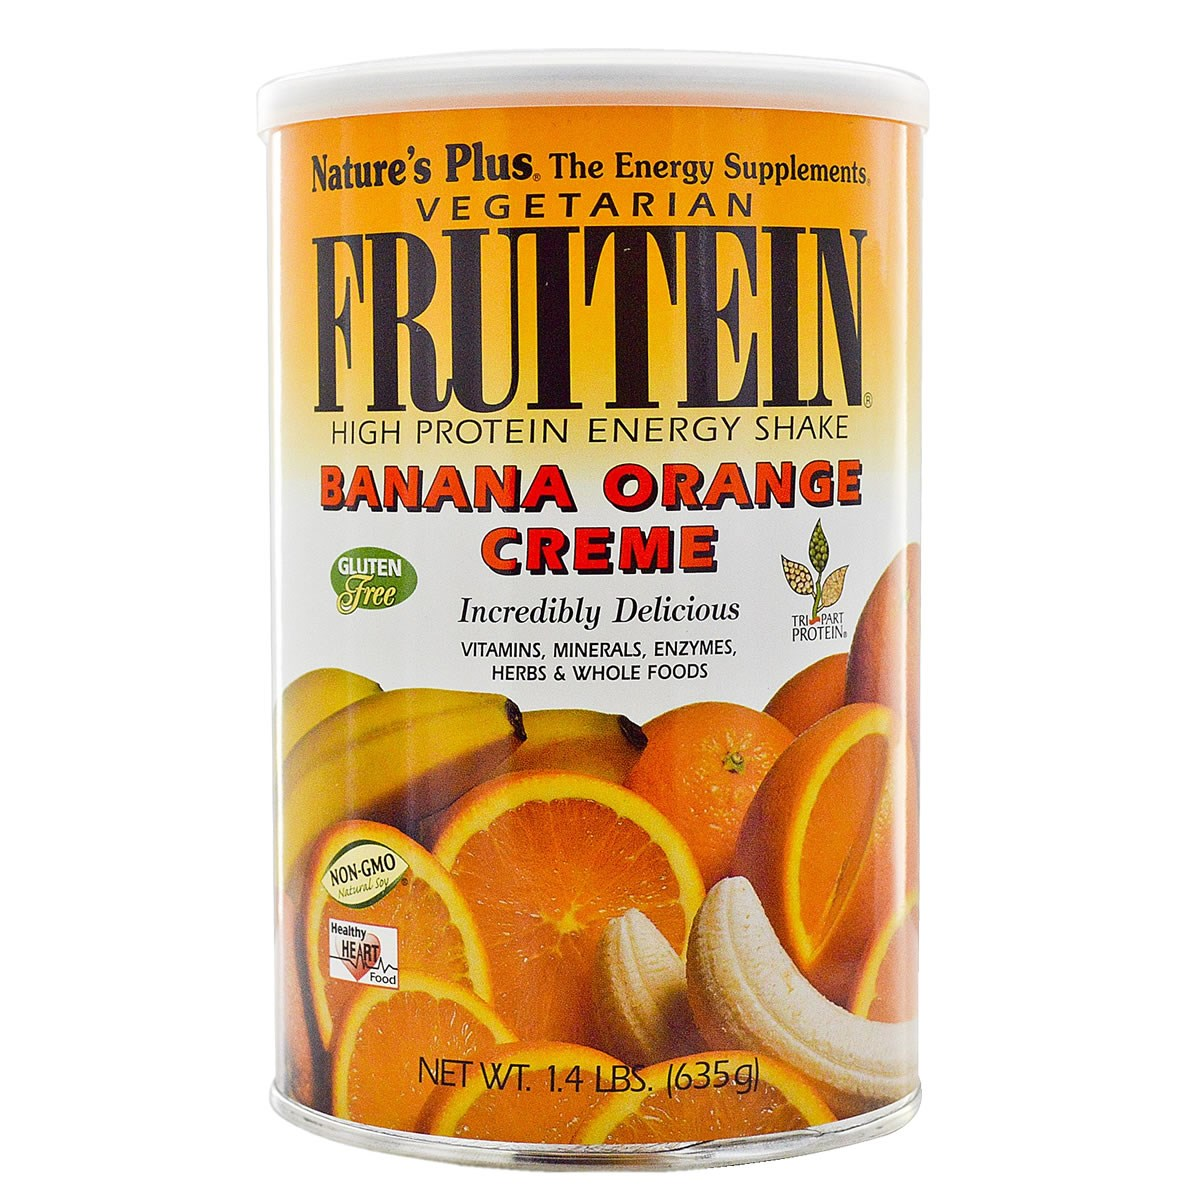 Natures Plus Fruitein - Vegetarian Banana Orange Creme Shake